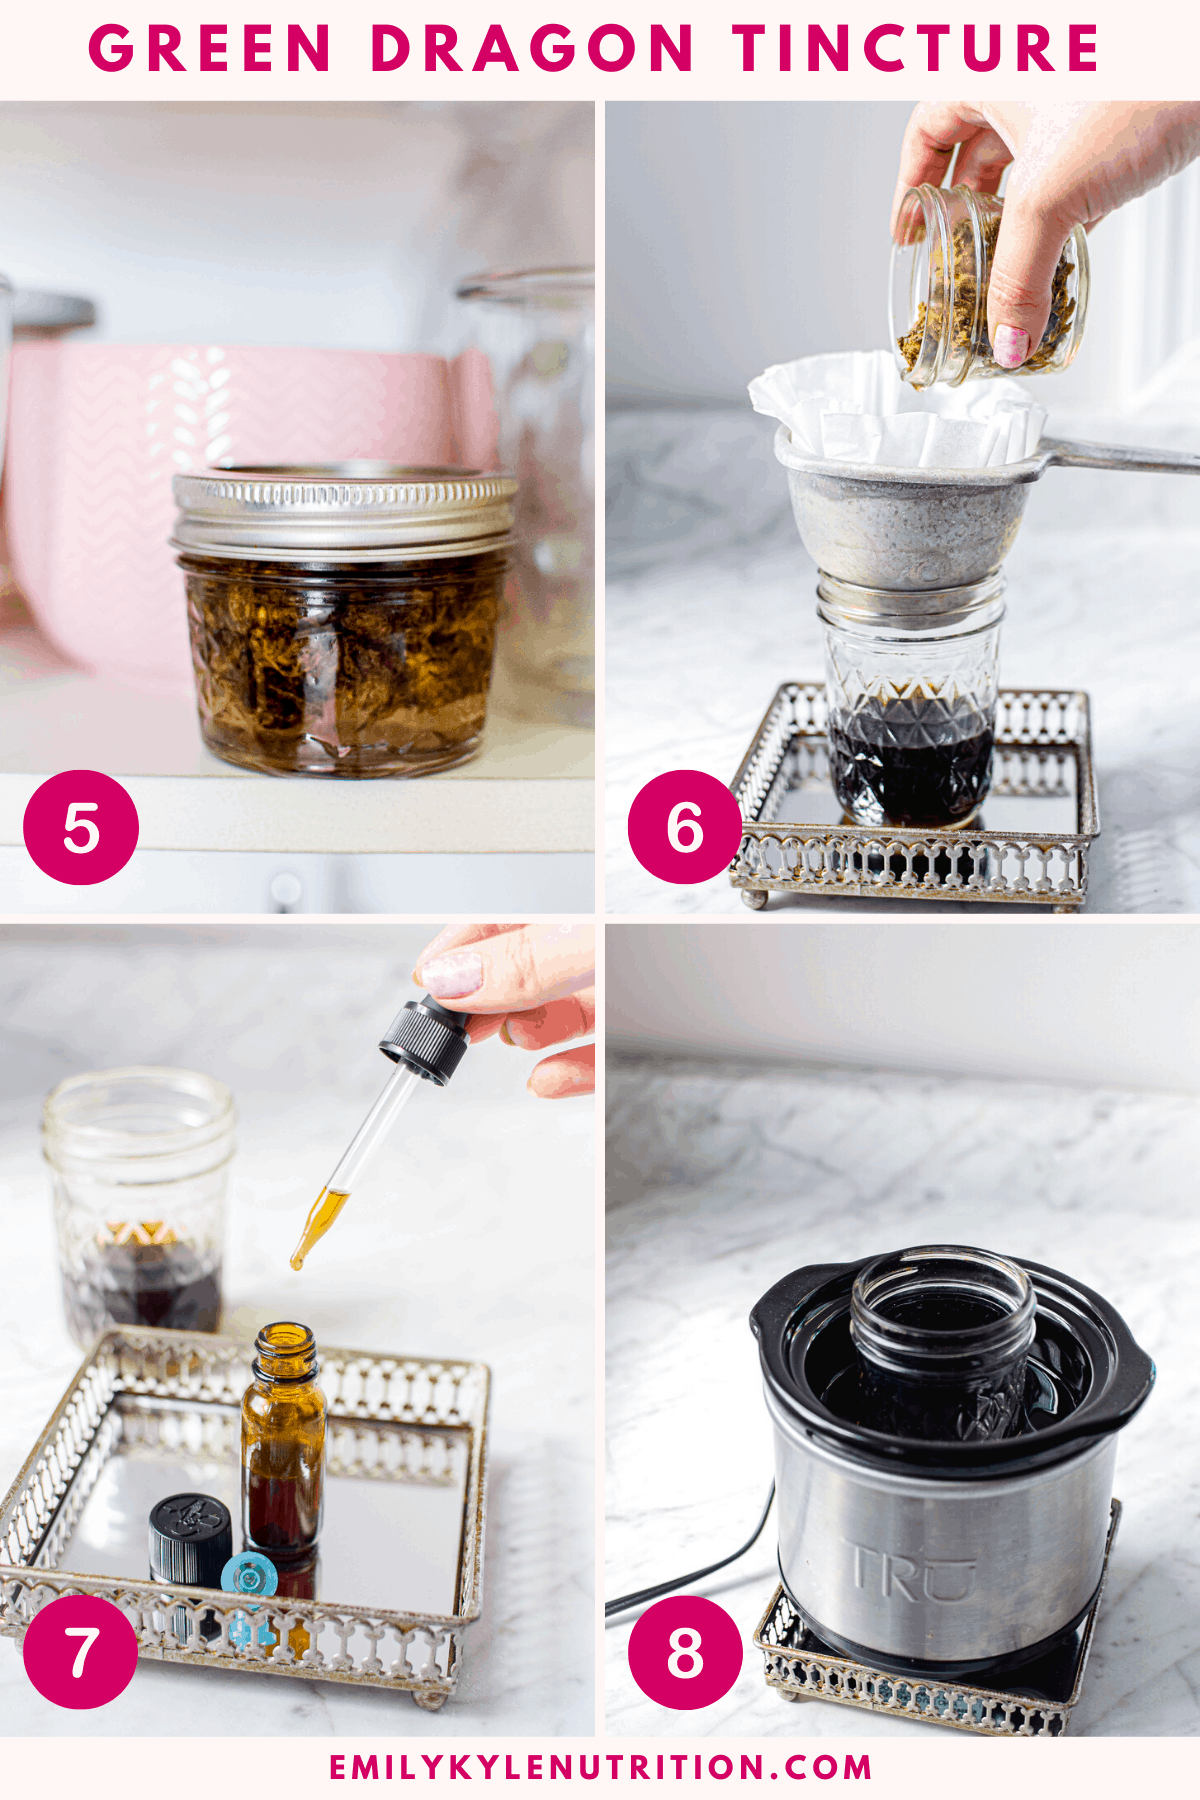 A 4 step image collage showing how to put the jar in a cupboard, then straining through a coffee filter, a image of the amber tincture bottle with a hand holding the dropper, and a white countertop with a mini crockpot with the tincture glass inside.